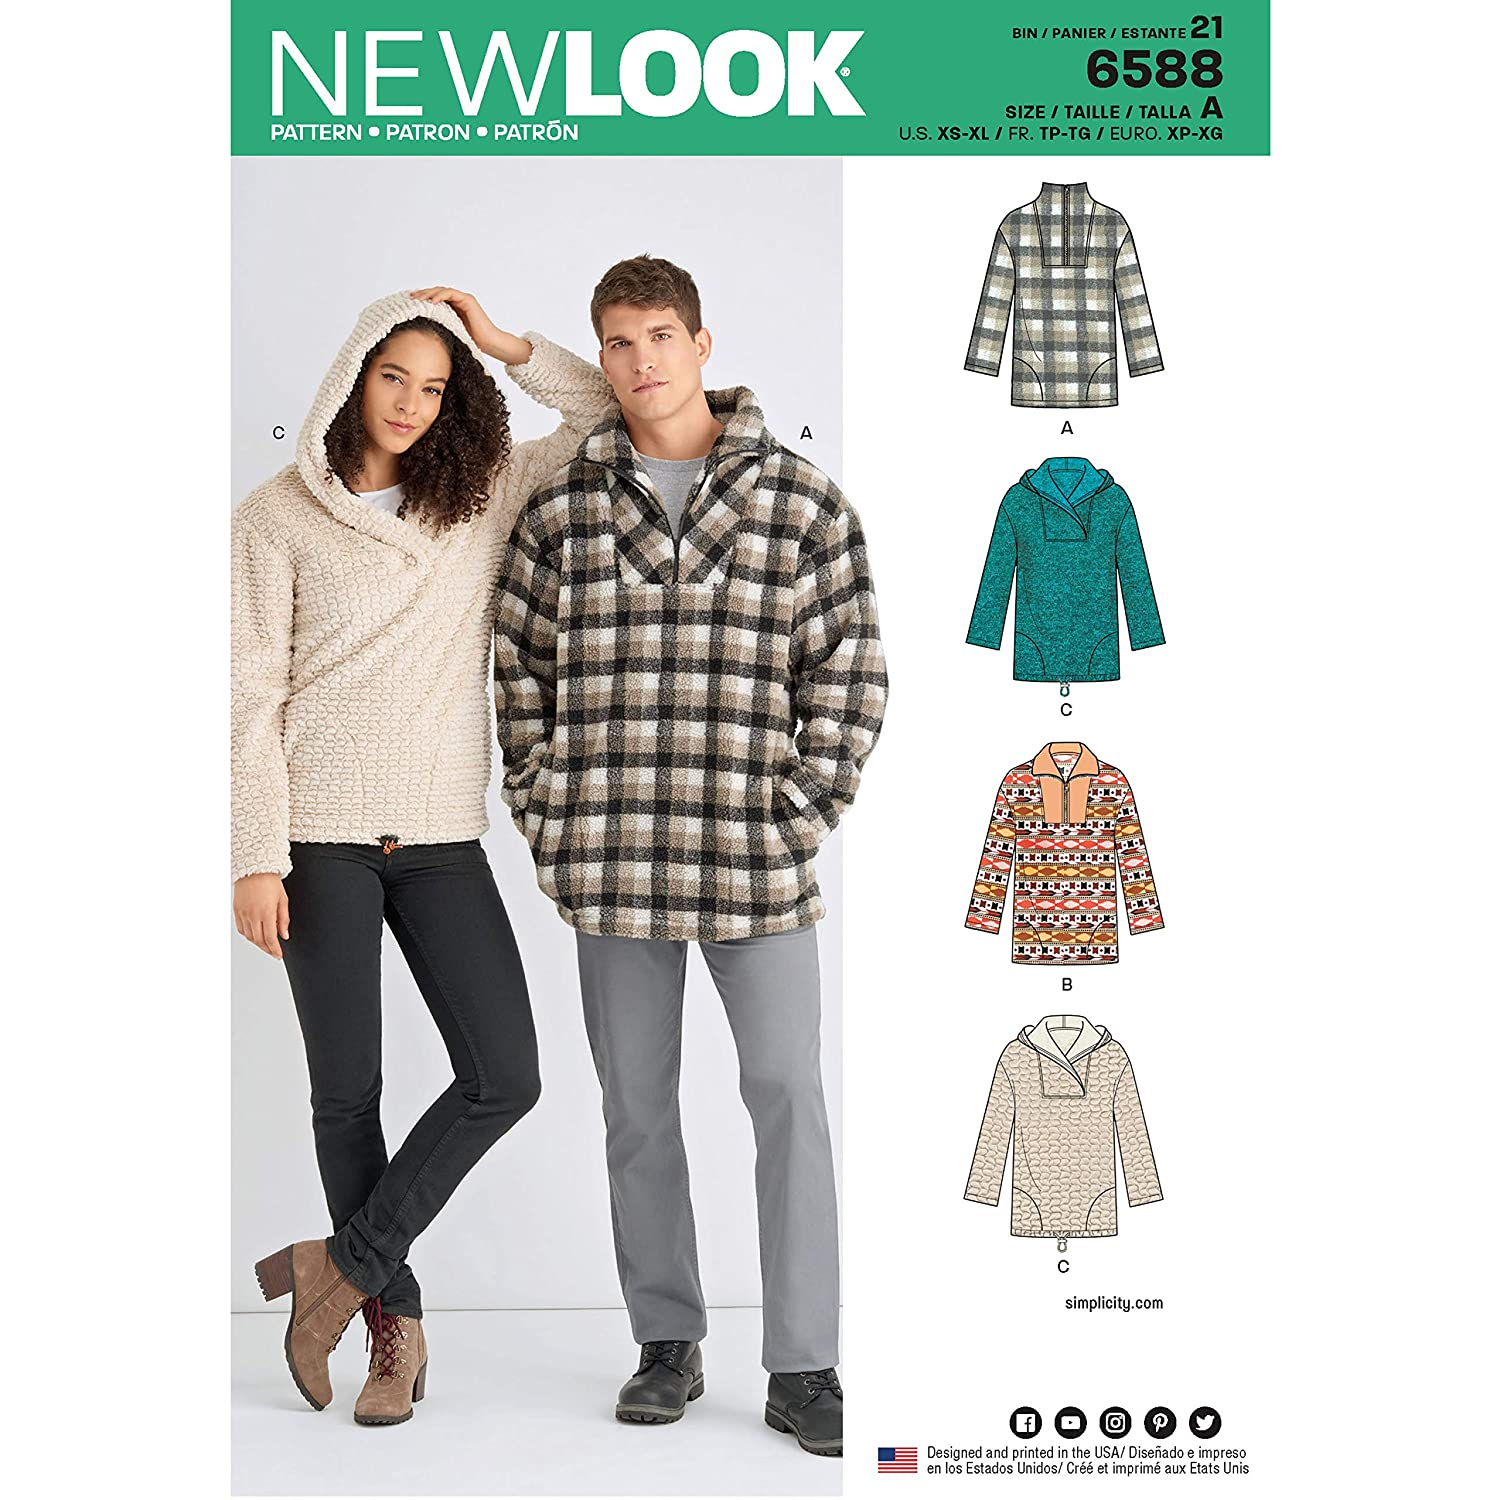 NEW LOOK Sewing Pattern 6588 - Unisex Tops, A (XS-S-M-L-XL)